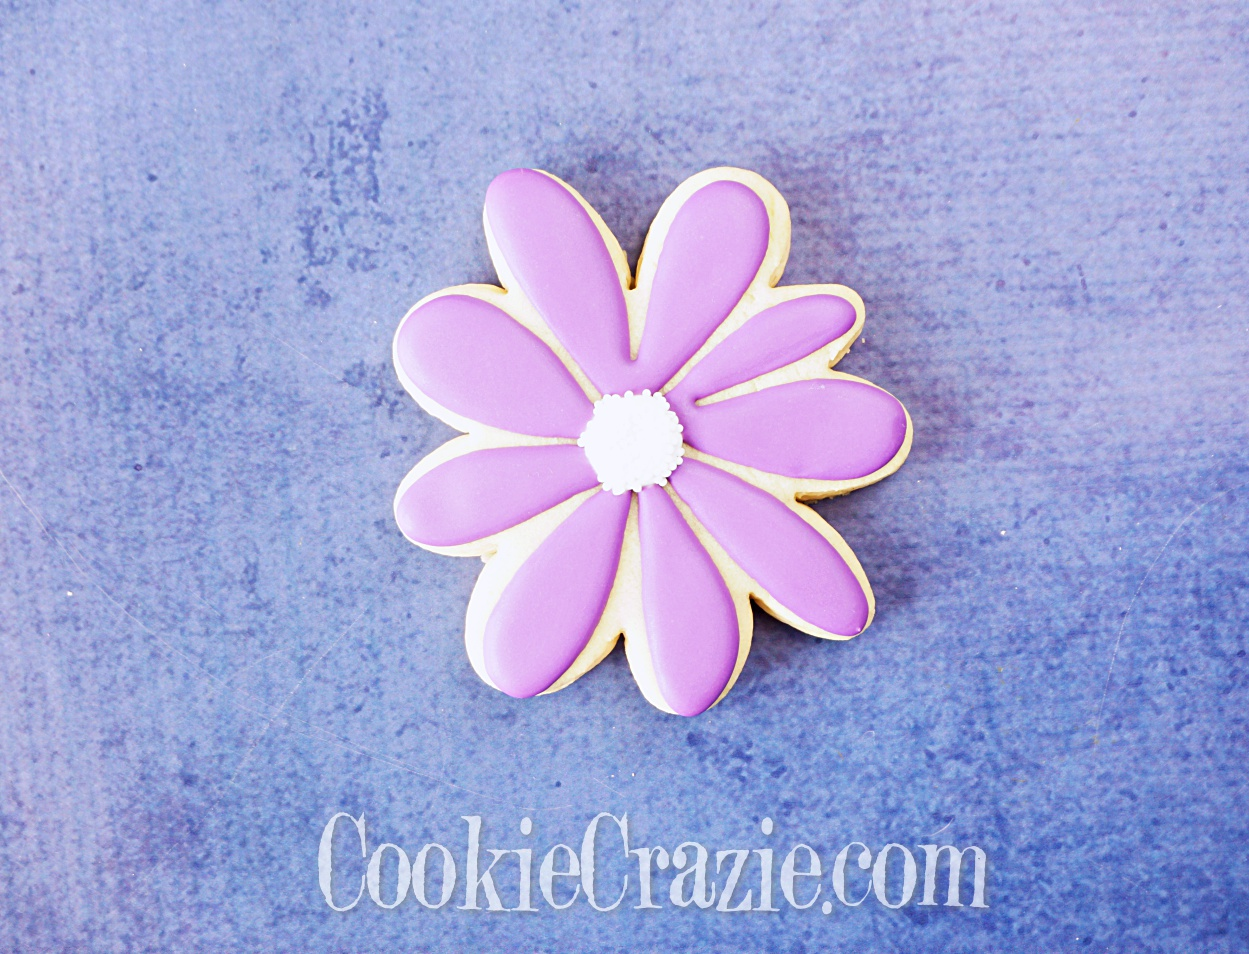 Flower Decorated Sugar Cookie YouTube video  HERE